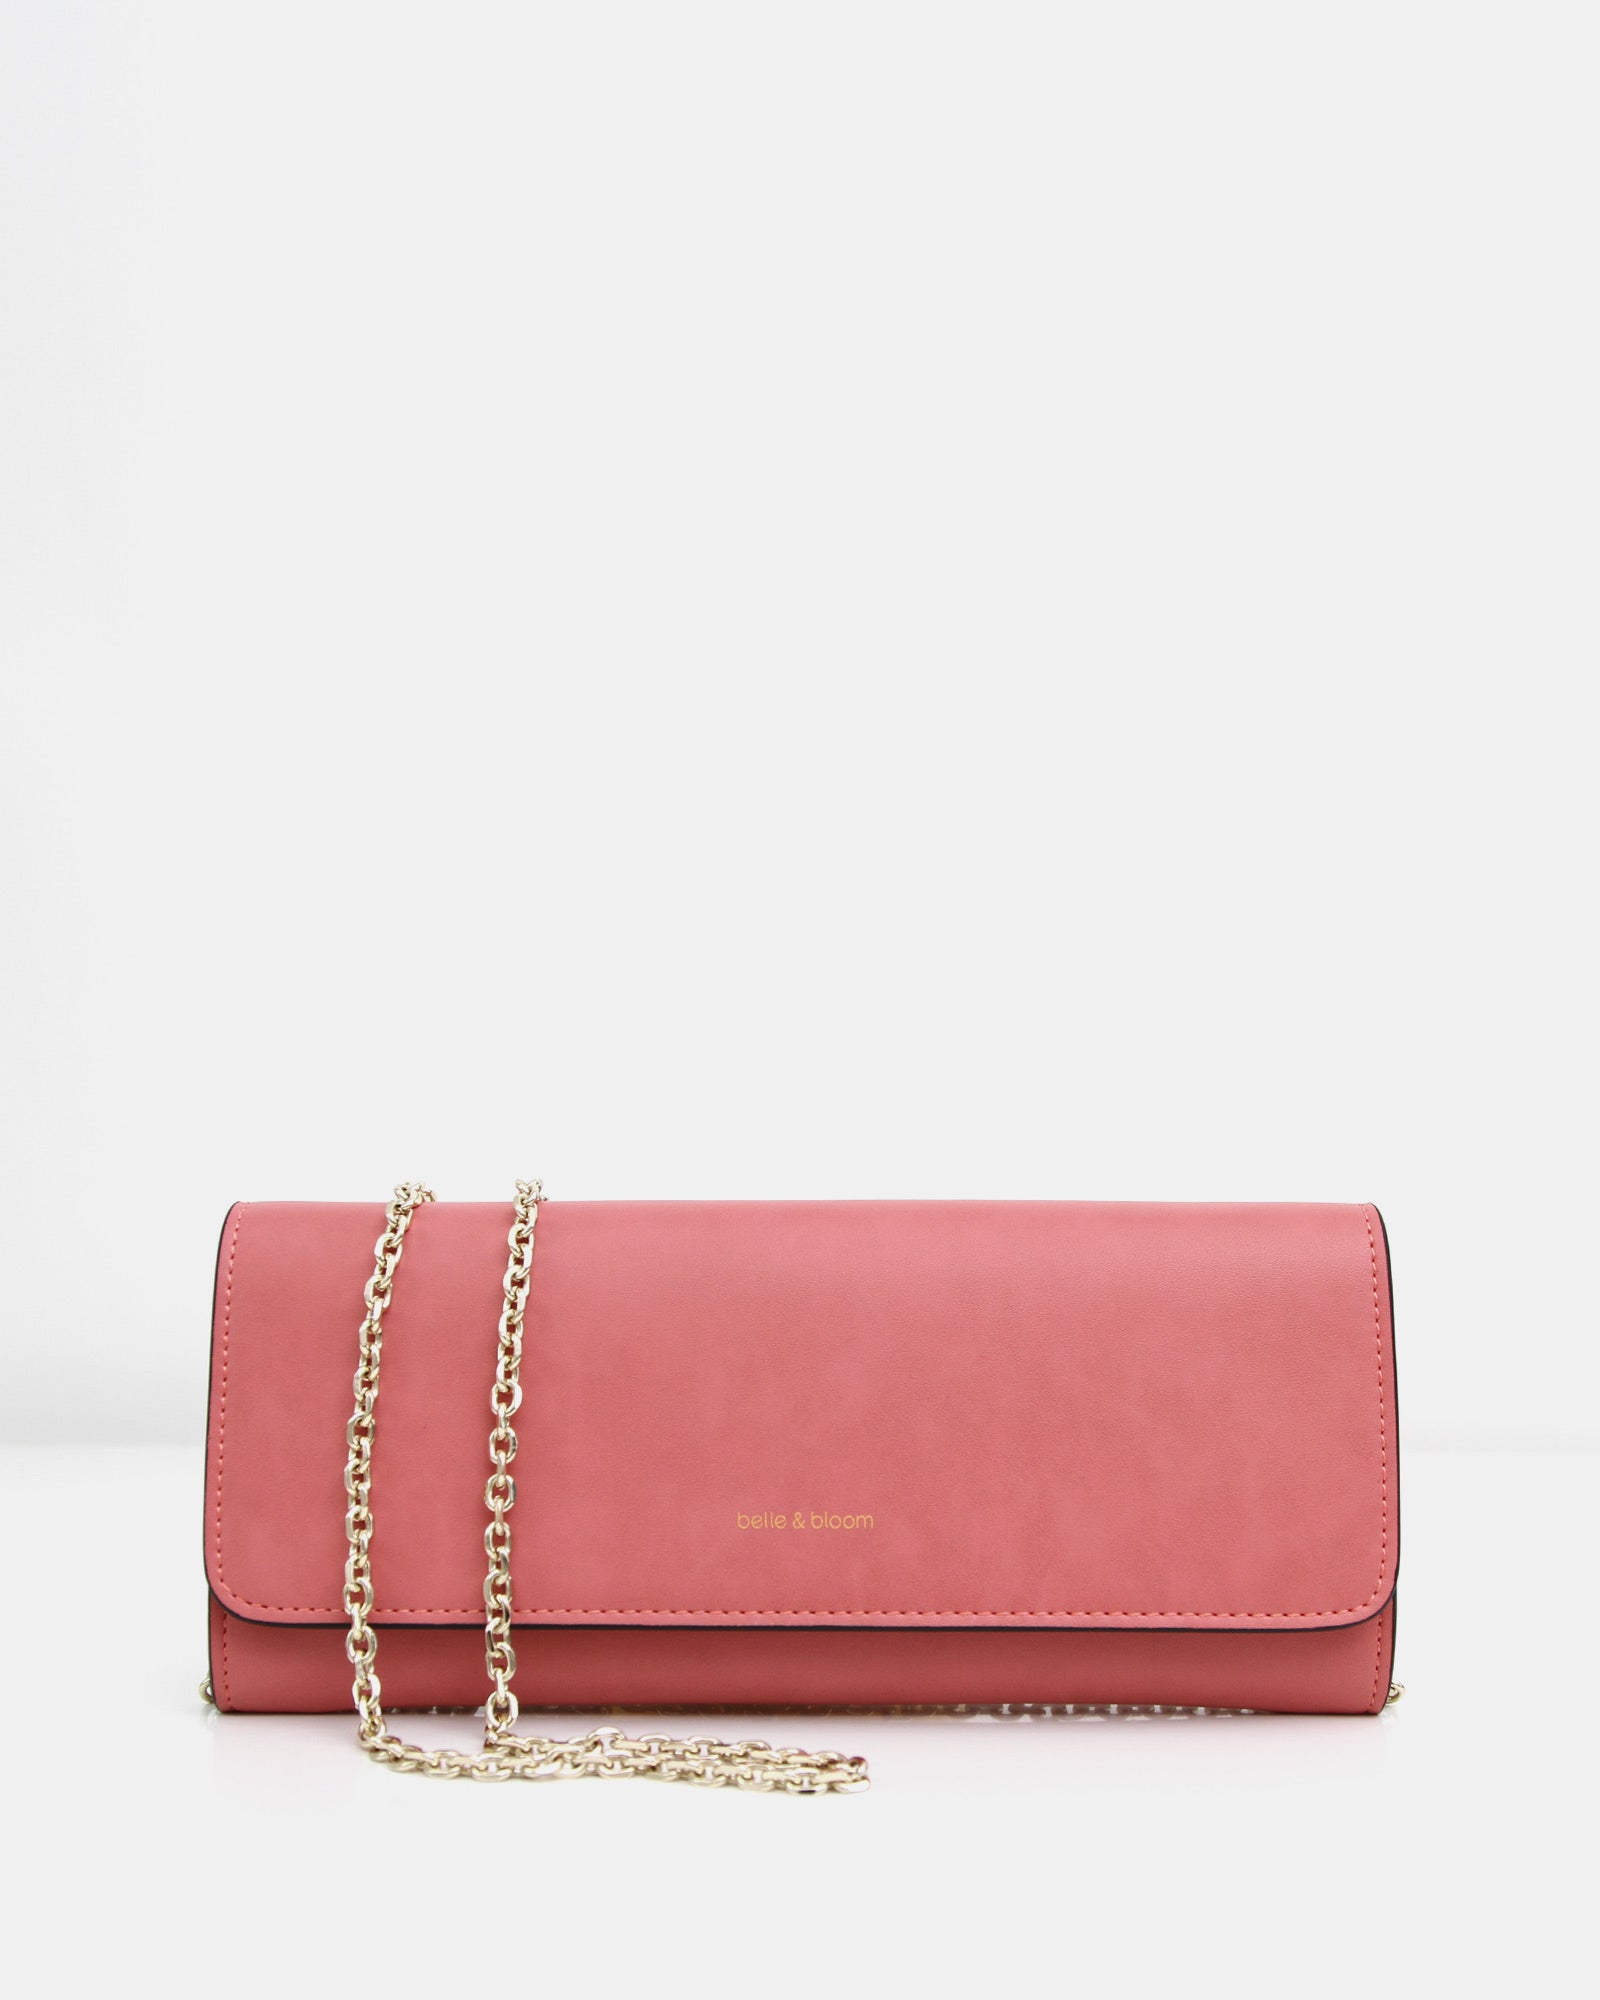 belle-&-bloom-pink-leather-cluch-with-golden-crossbody-chain.jpg